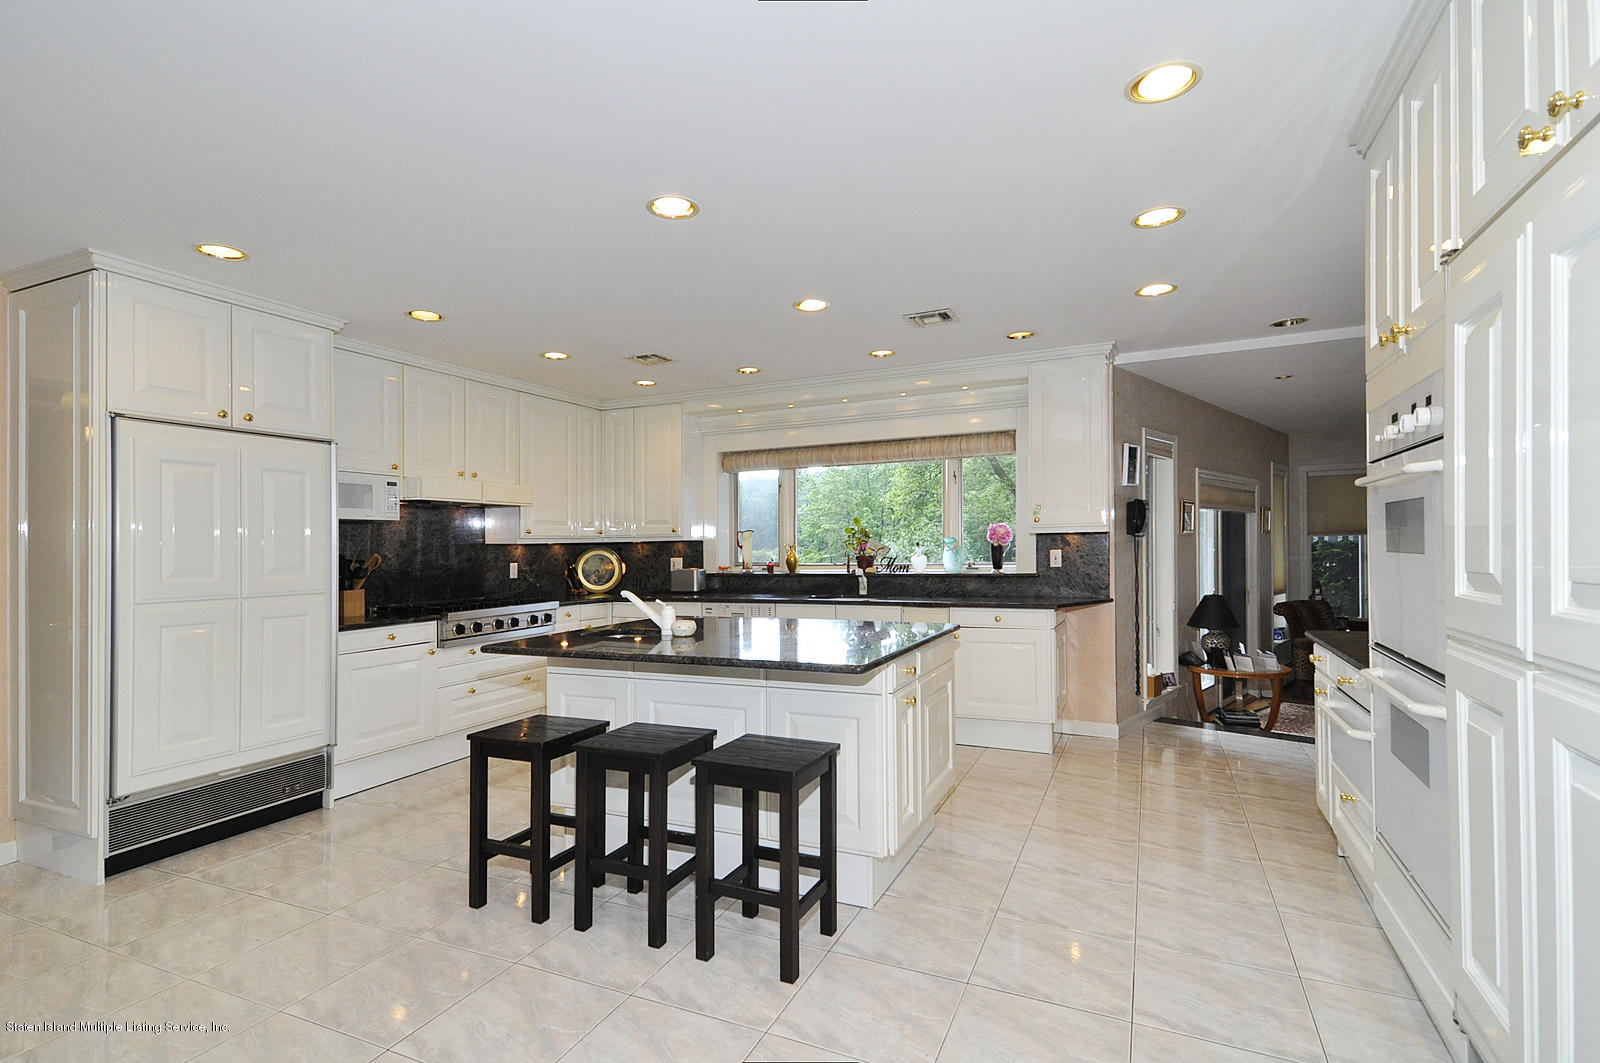 Single Family - Detached 738 Todt Hill Road  Staten Island, NY 10301, MLS-1127956-5